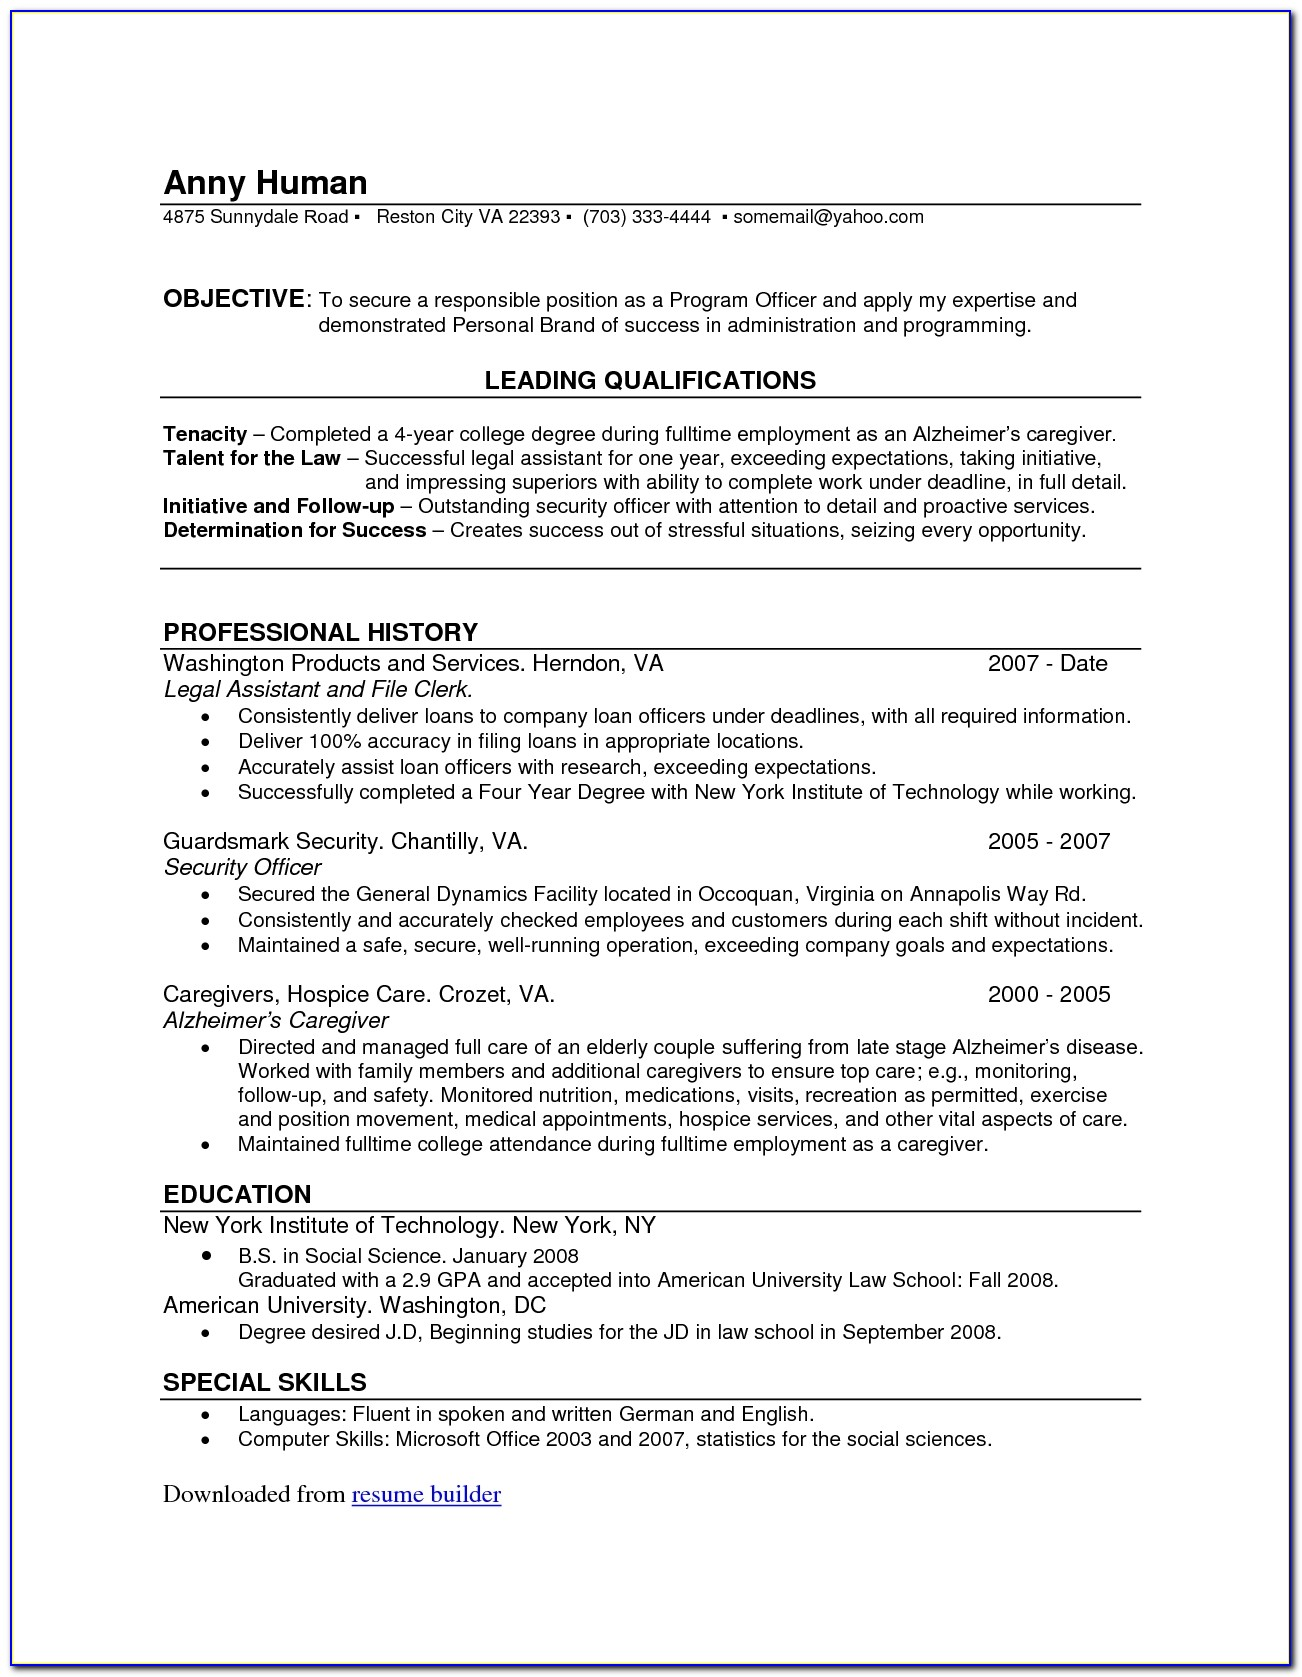 Create Cv Template Scaffold Builder Cv Sample Curriculum Vitae Inside 79 Exciting Copy And Paste Resume Templates